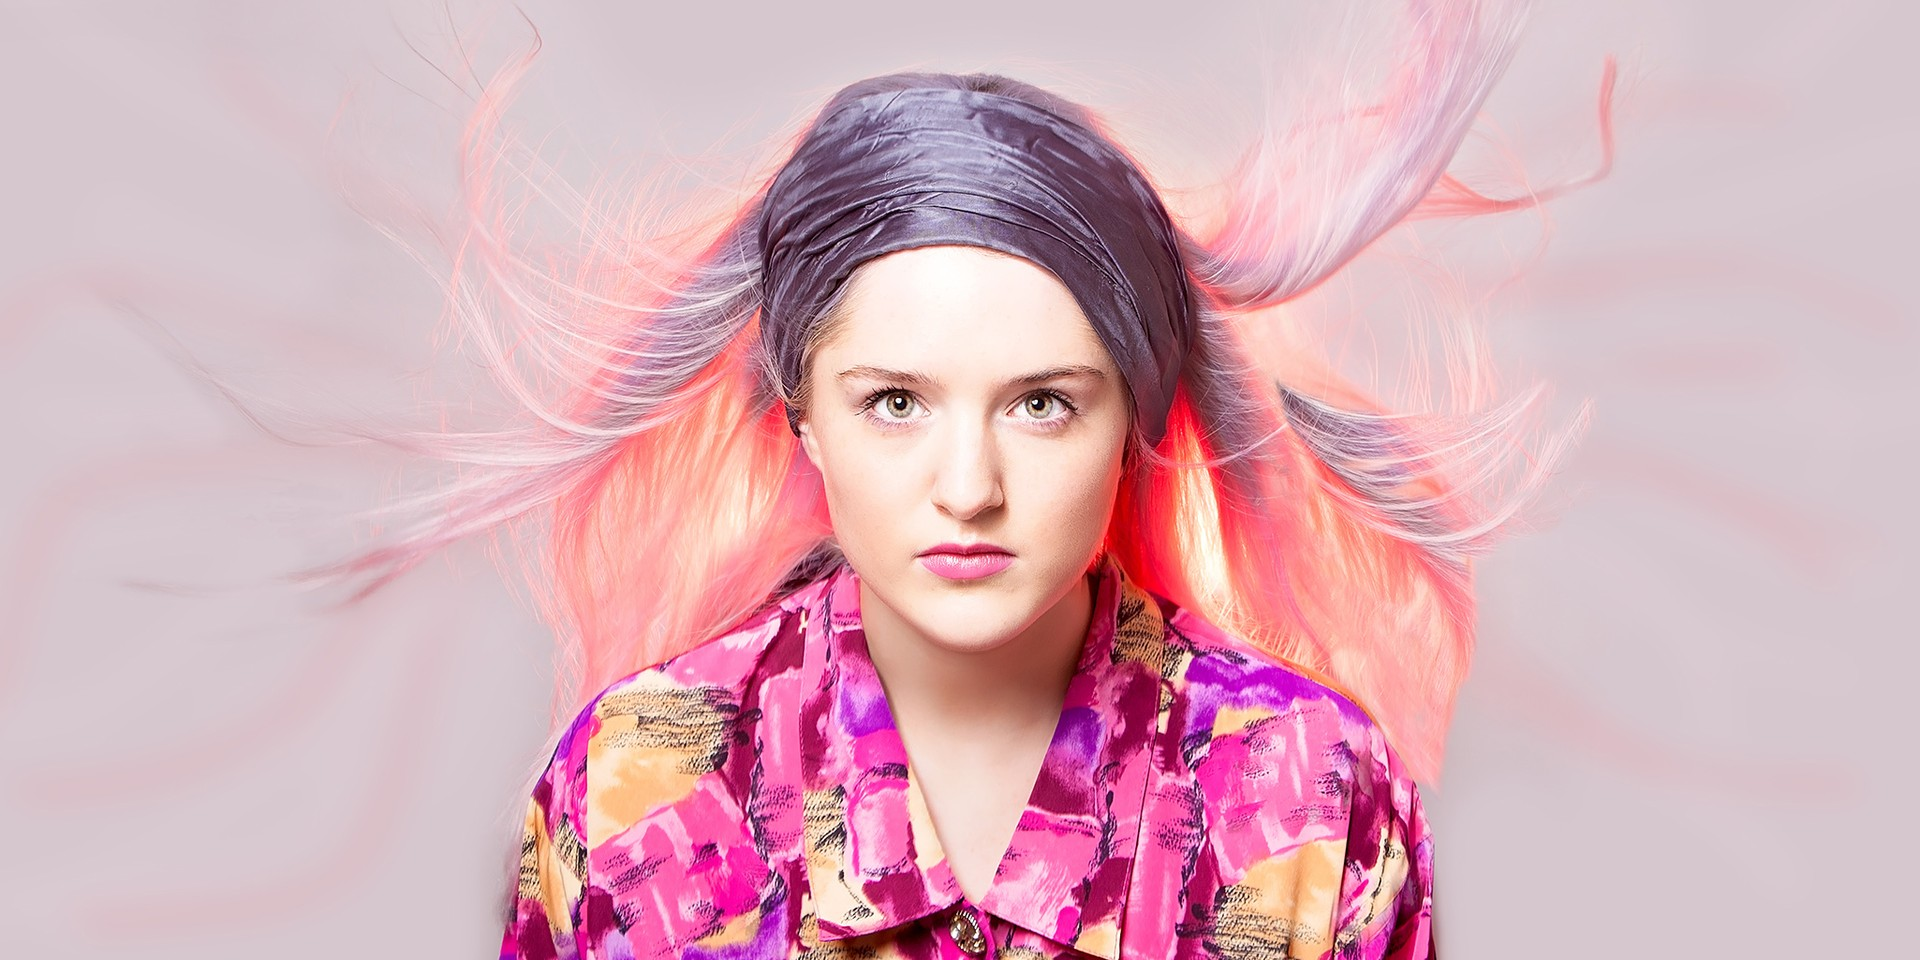 Emerging artist Be Charlotte will perform a free show in Singapore